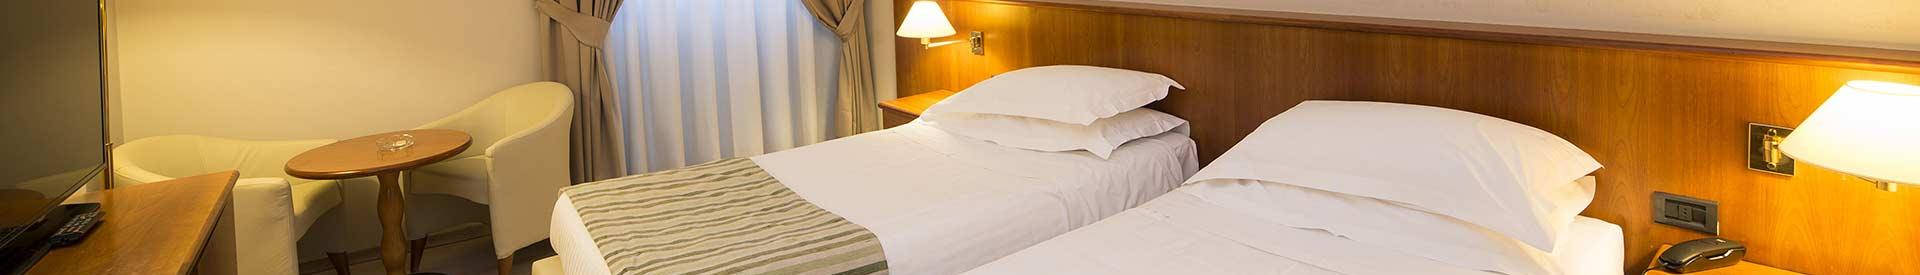 Looking for a hotel for your stay in Piacenza (PC)? Book/reserve at the Best Western Park Hotel